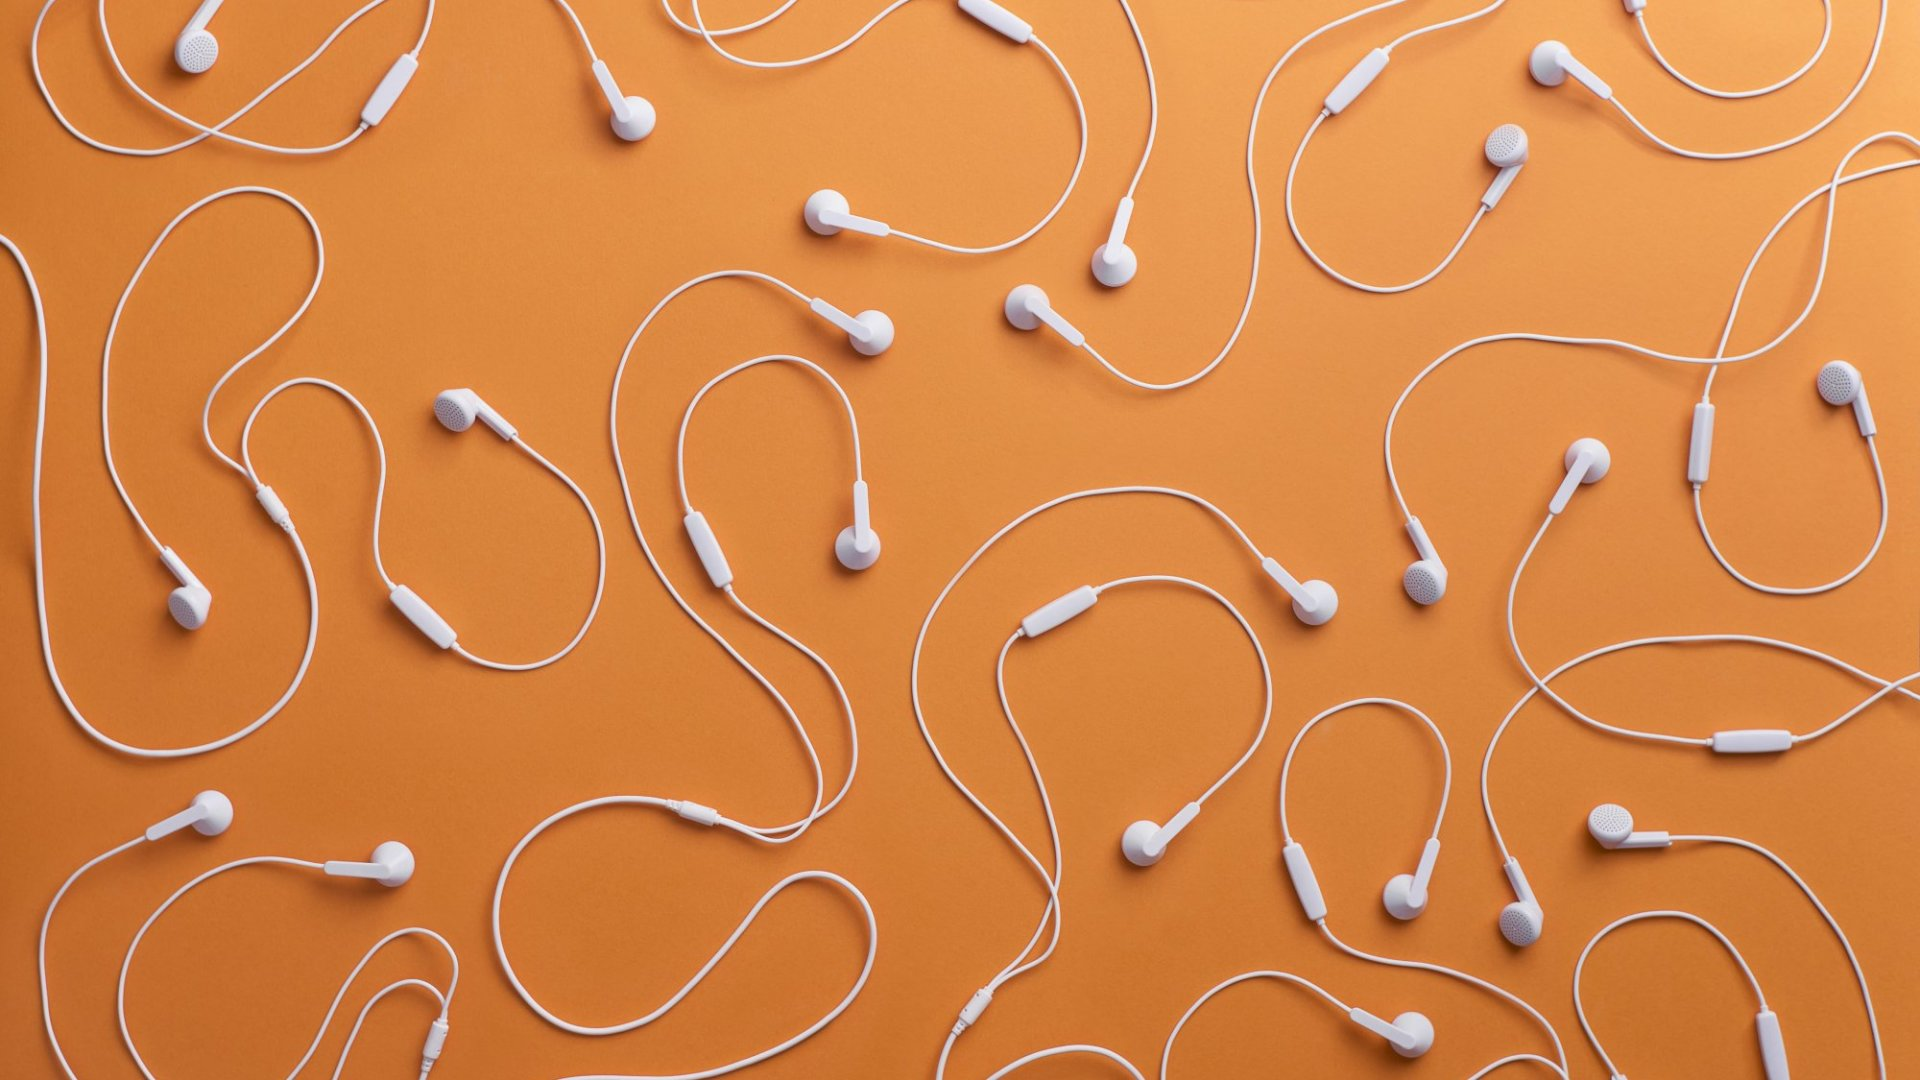 Science Says the Smartest People Listen to This Kind of Music